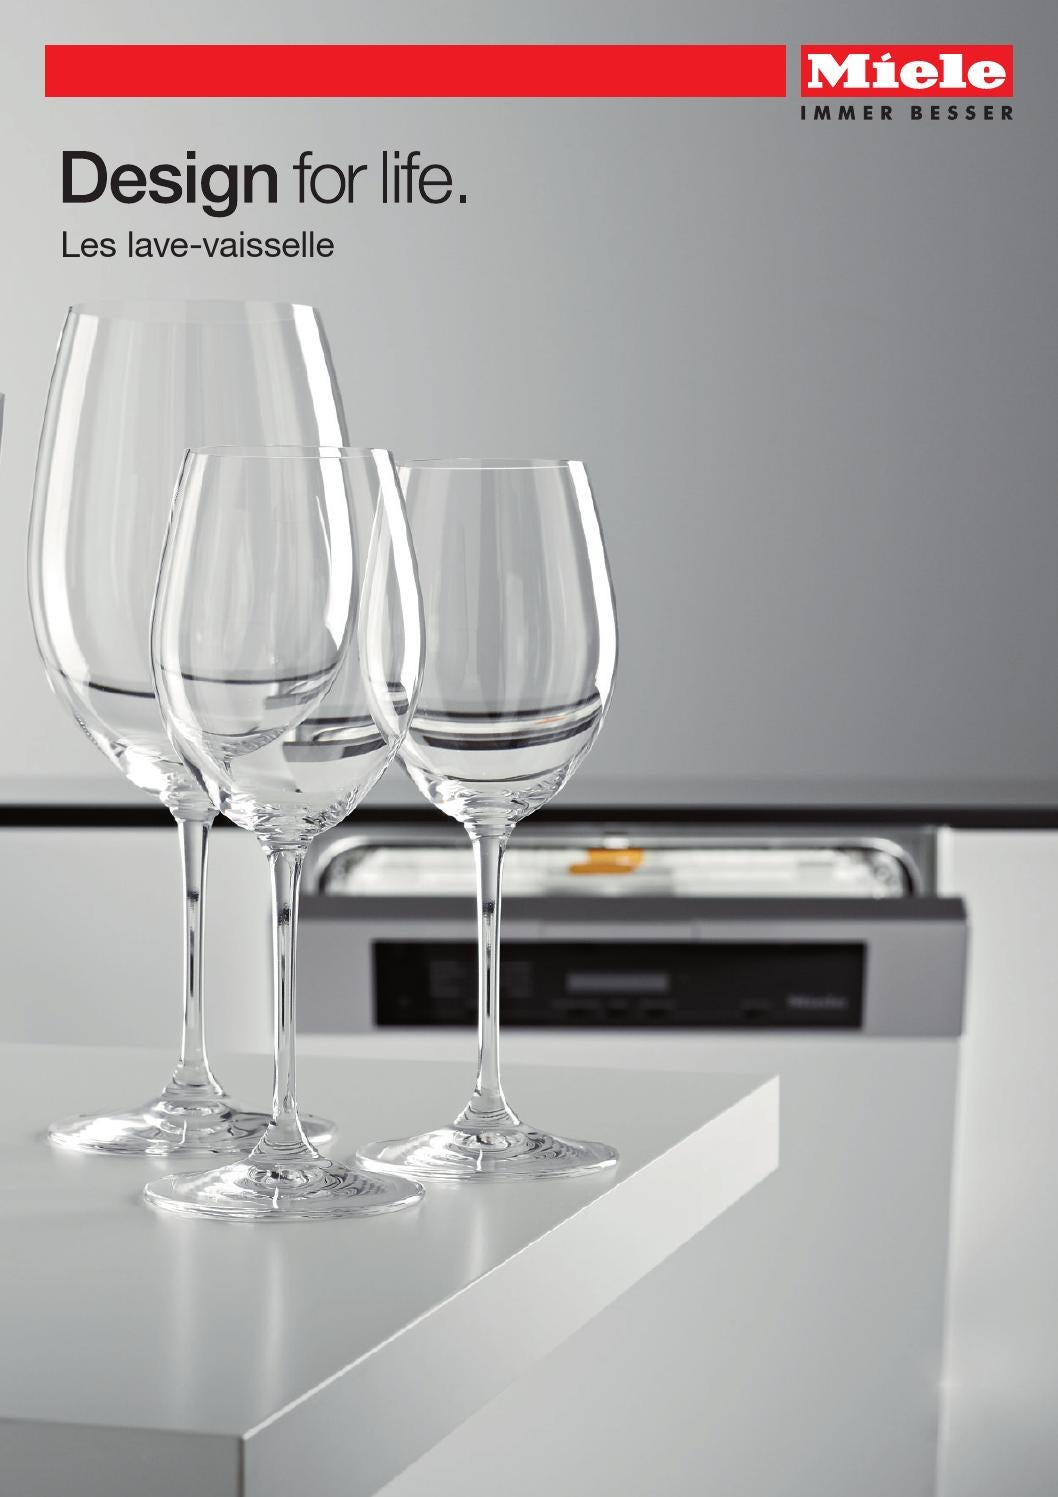 miele catalogue les lave vaisselle fr by miele issuu. Black Bedroom Furniture Sets. Home Design Ideas